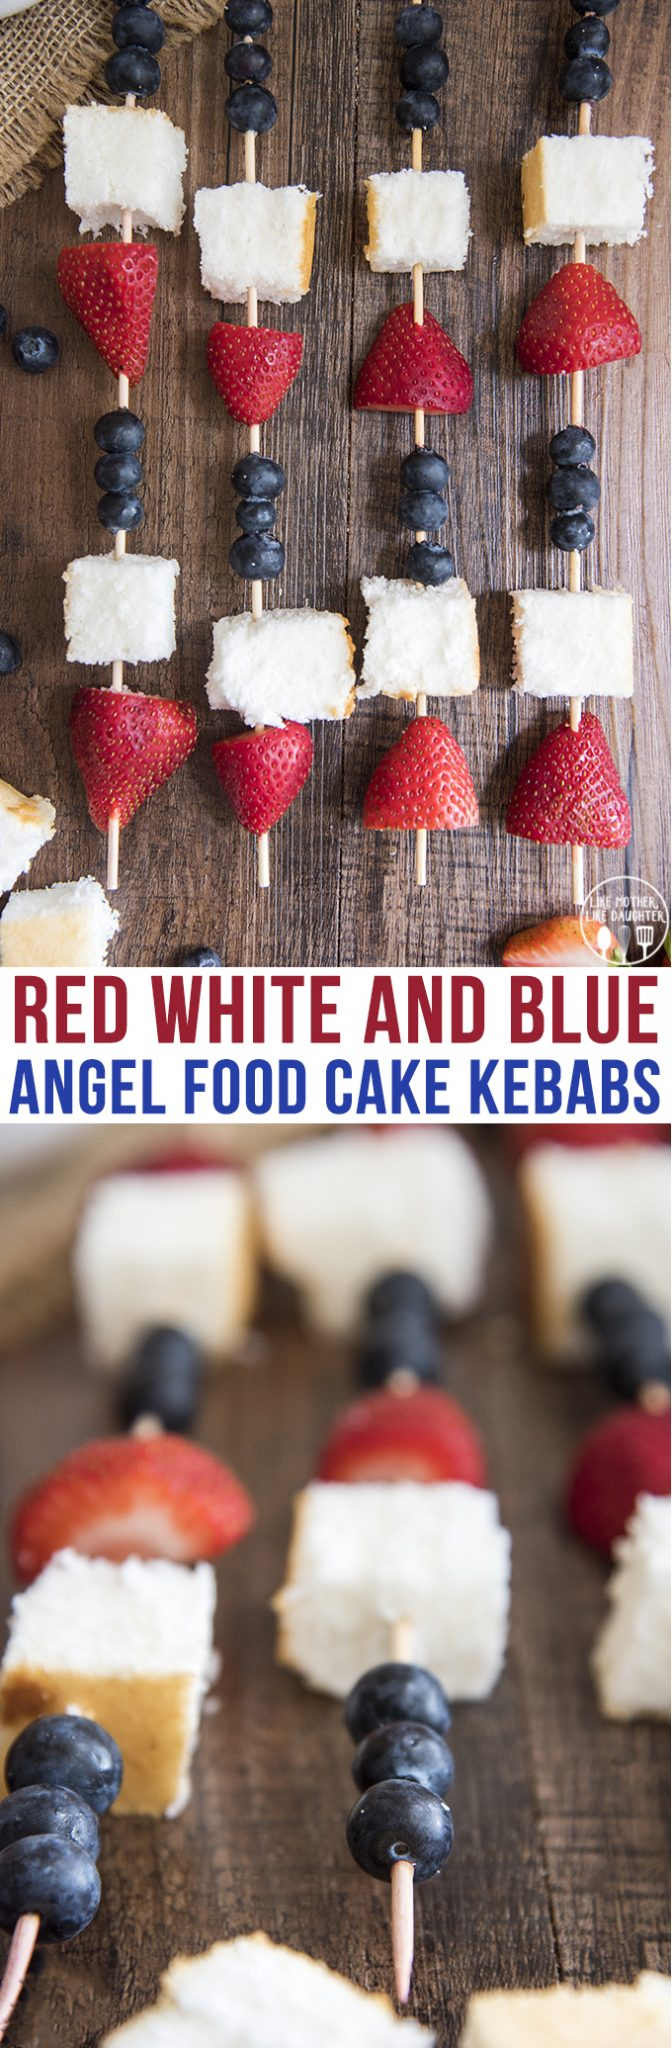 Red White and Blue Angel Food Cake Kebabs - these delicious and easy kebabs are only 4 ingredients and perfect for a fun patriotic treat!